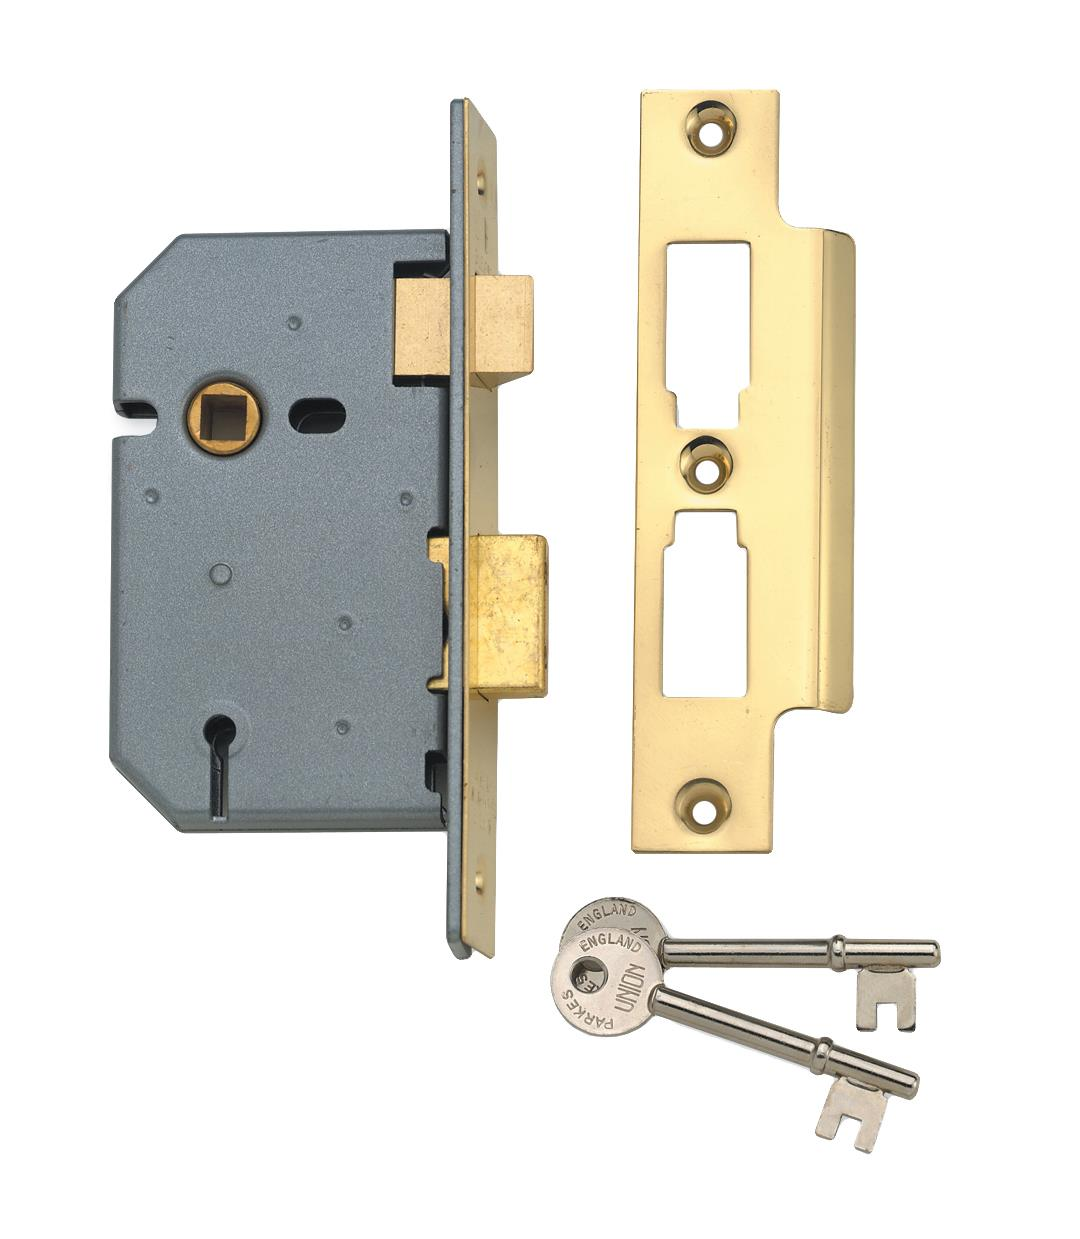 2277-64 / 2277-78 / 2277-103 - 3 Lever Upright Lock